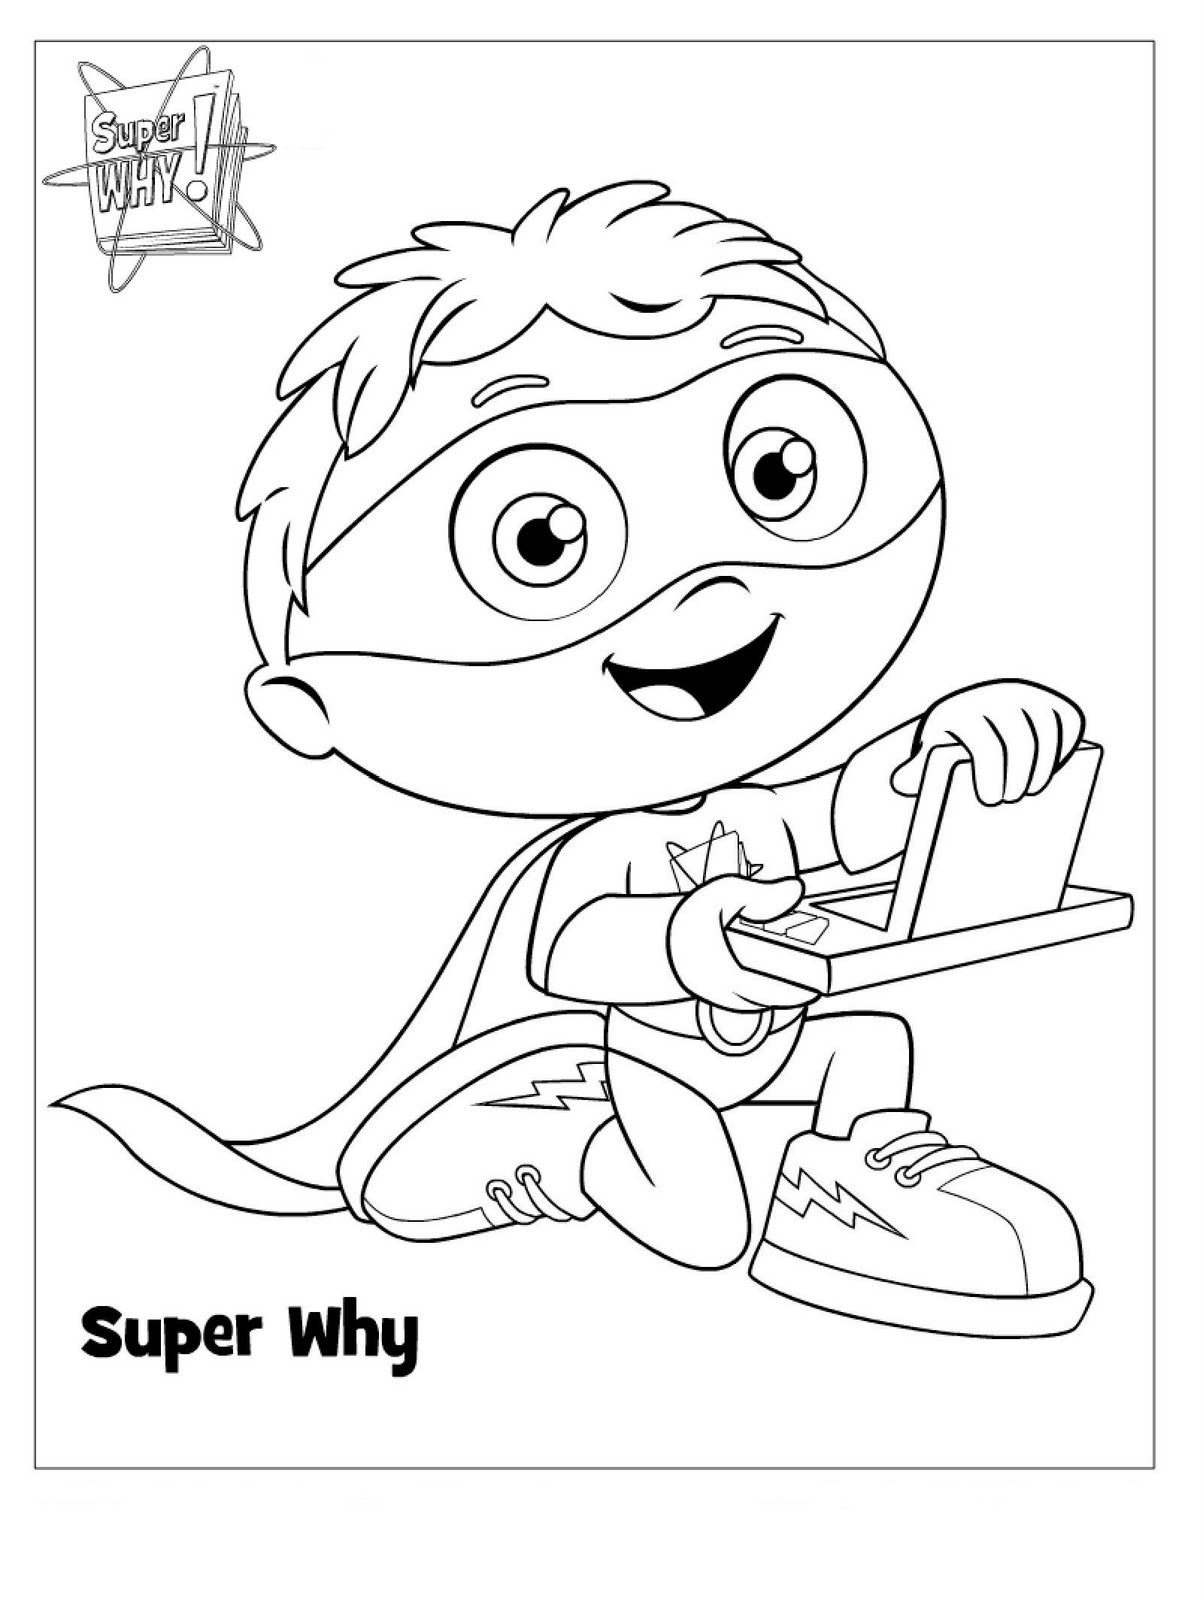 Super why coloring pages best coloring pages for kids Coloring book for toddlers